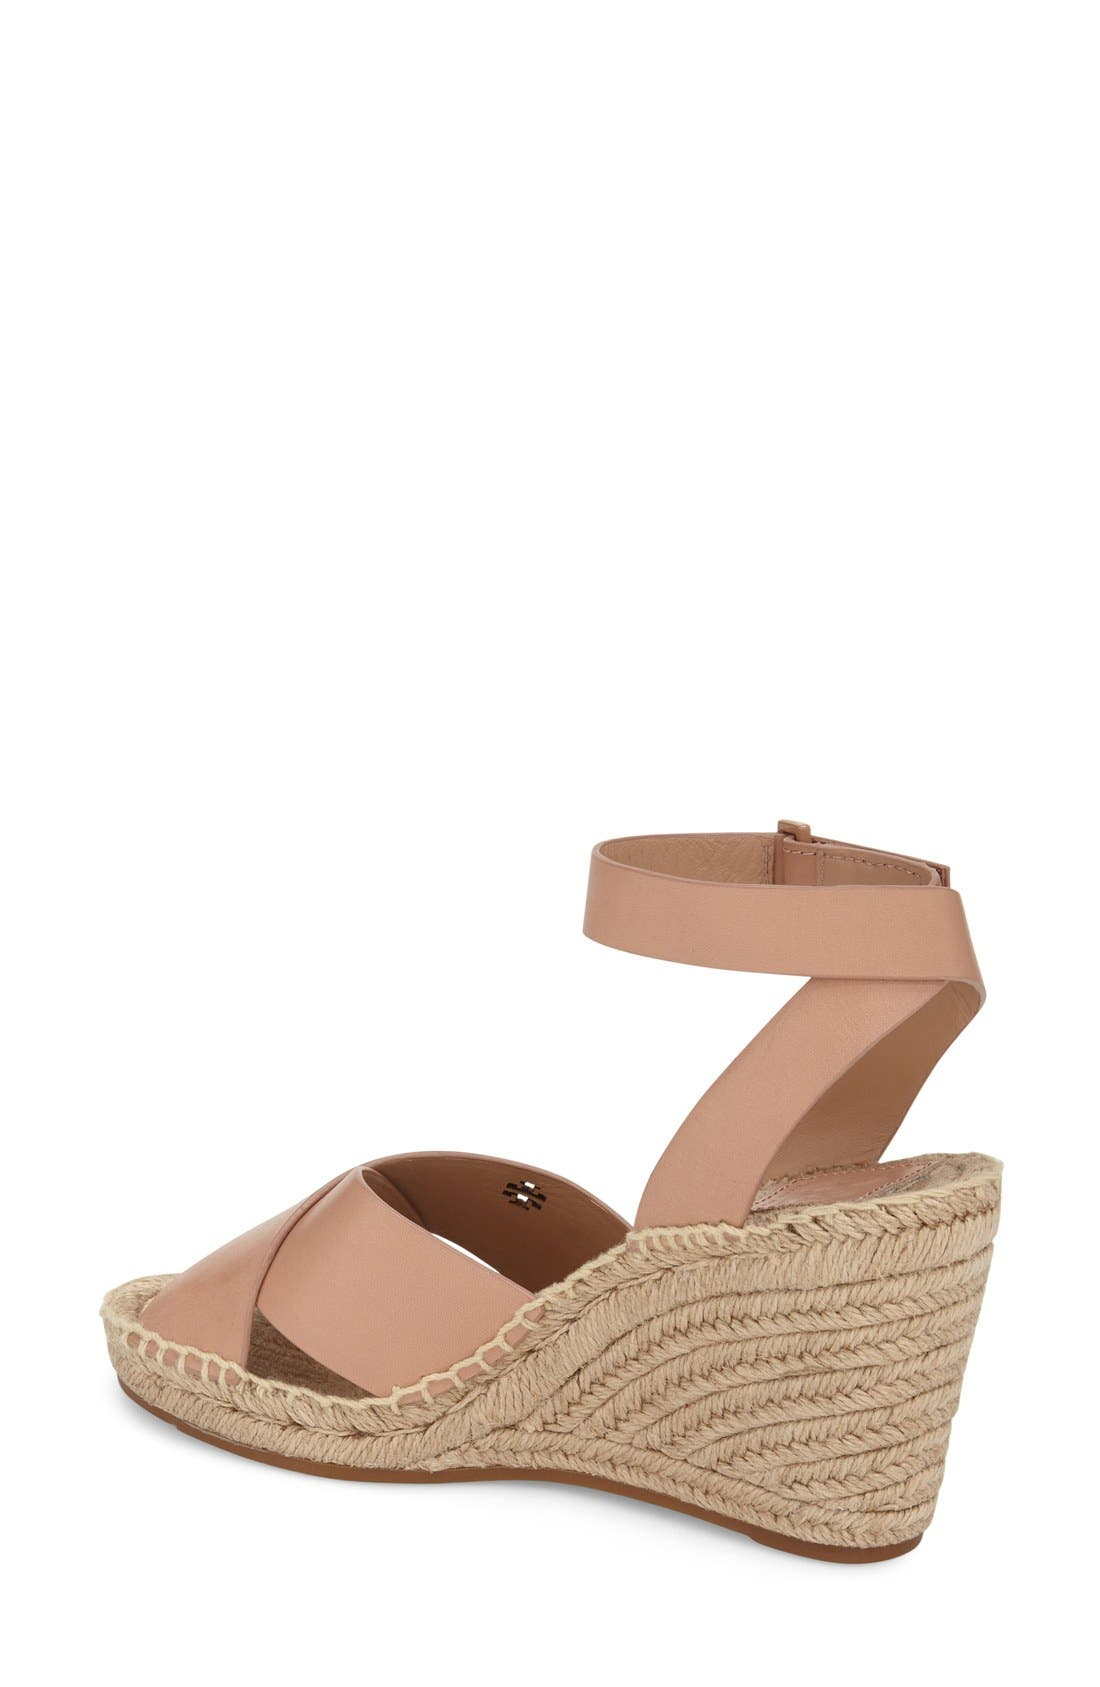 'Bima' Espadrille Wedge,                             Alternate thumbnail 3, color,                             256